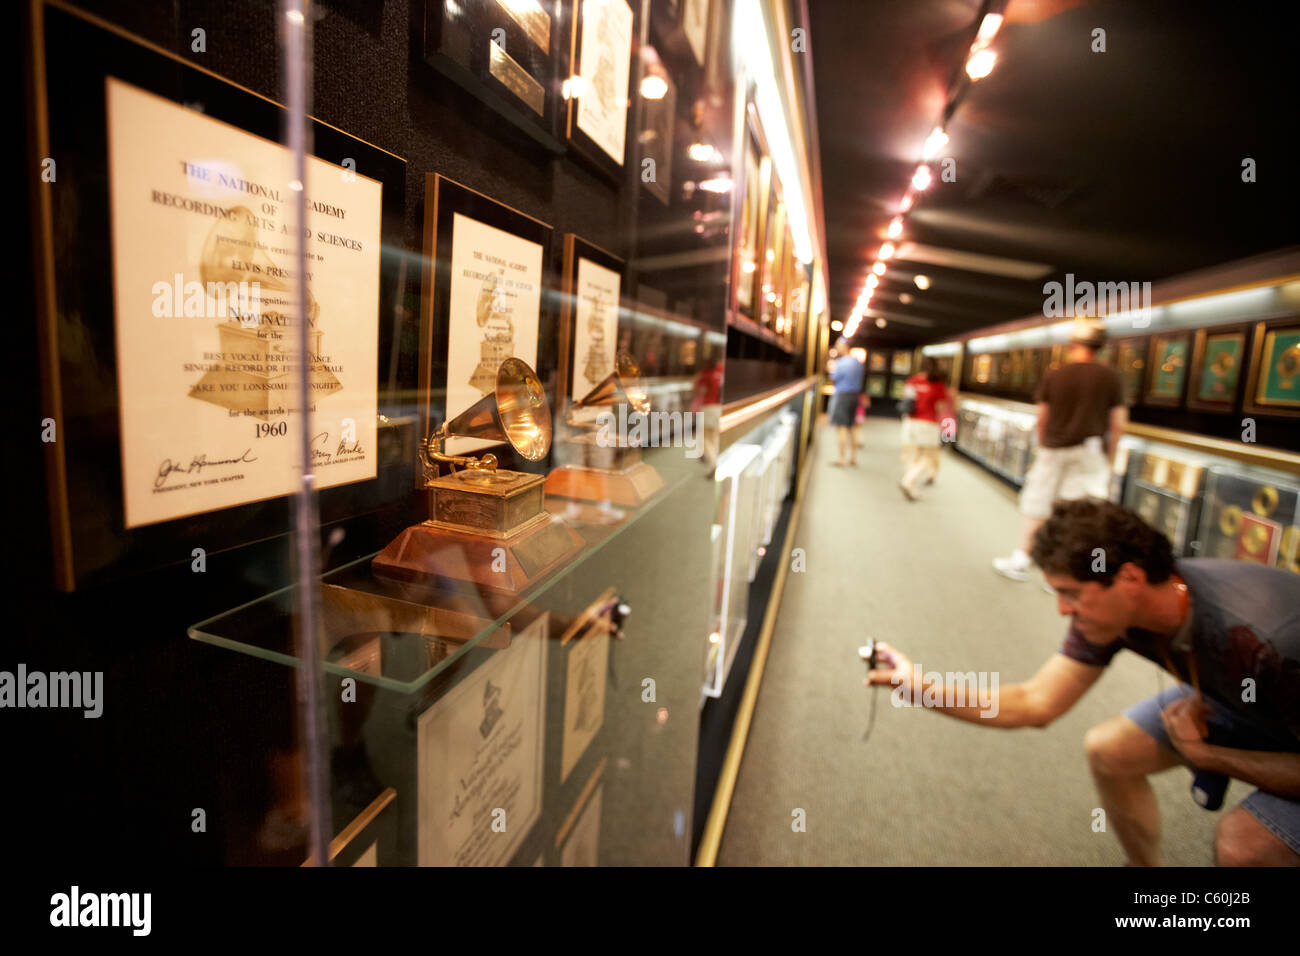 grammy nomination and tourists visit the trophy room graceland mansion memphis tennessee usa - Stock Image